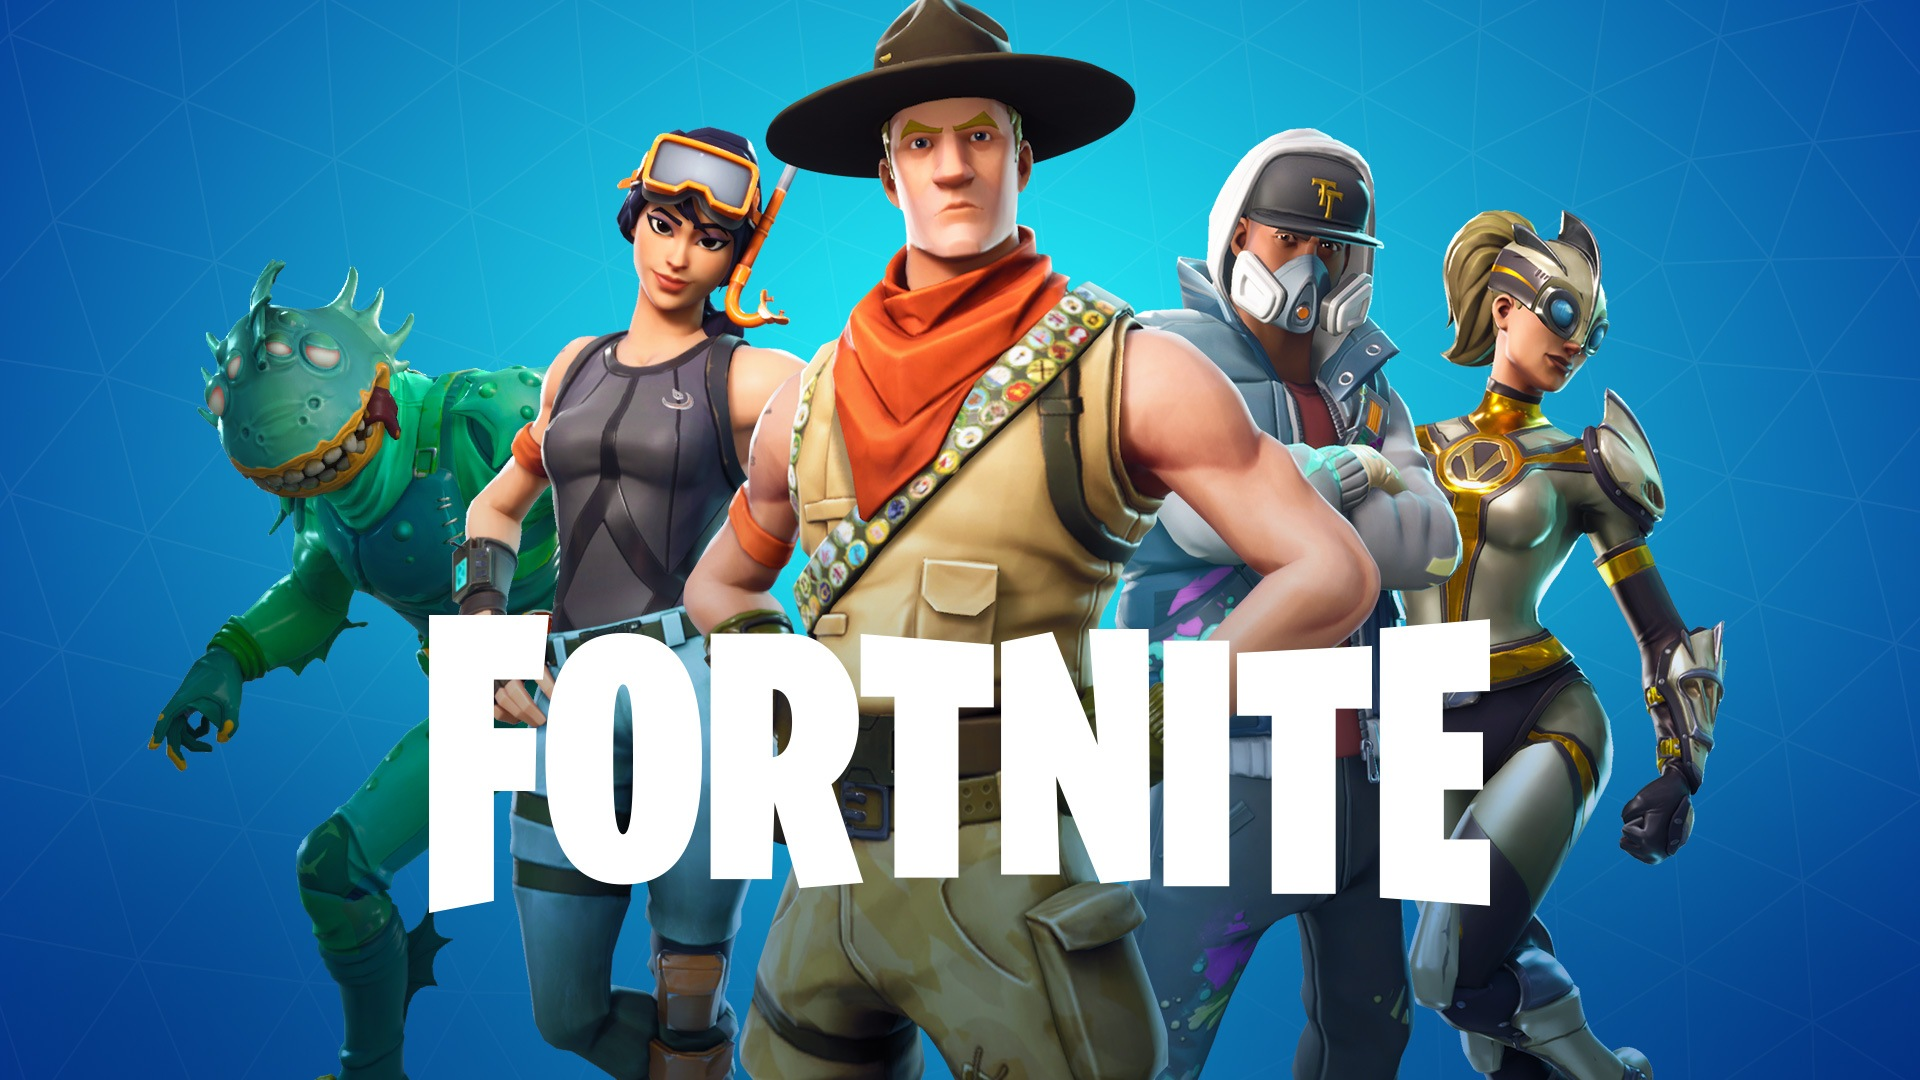 Epic Games buys Fortnite Anti-cheat supplier, Kamu